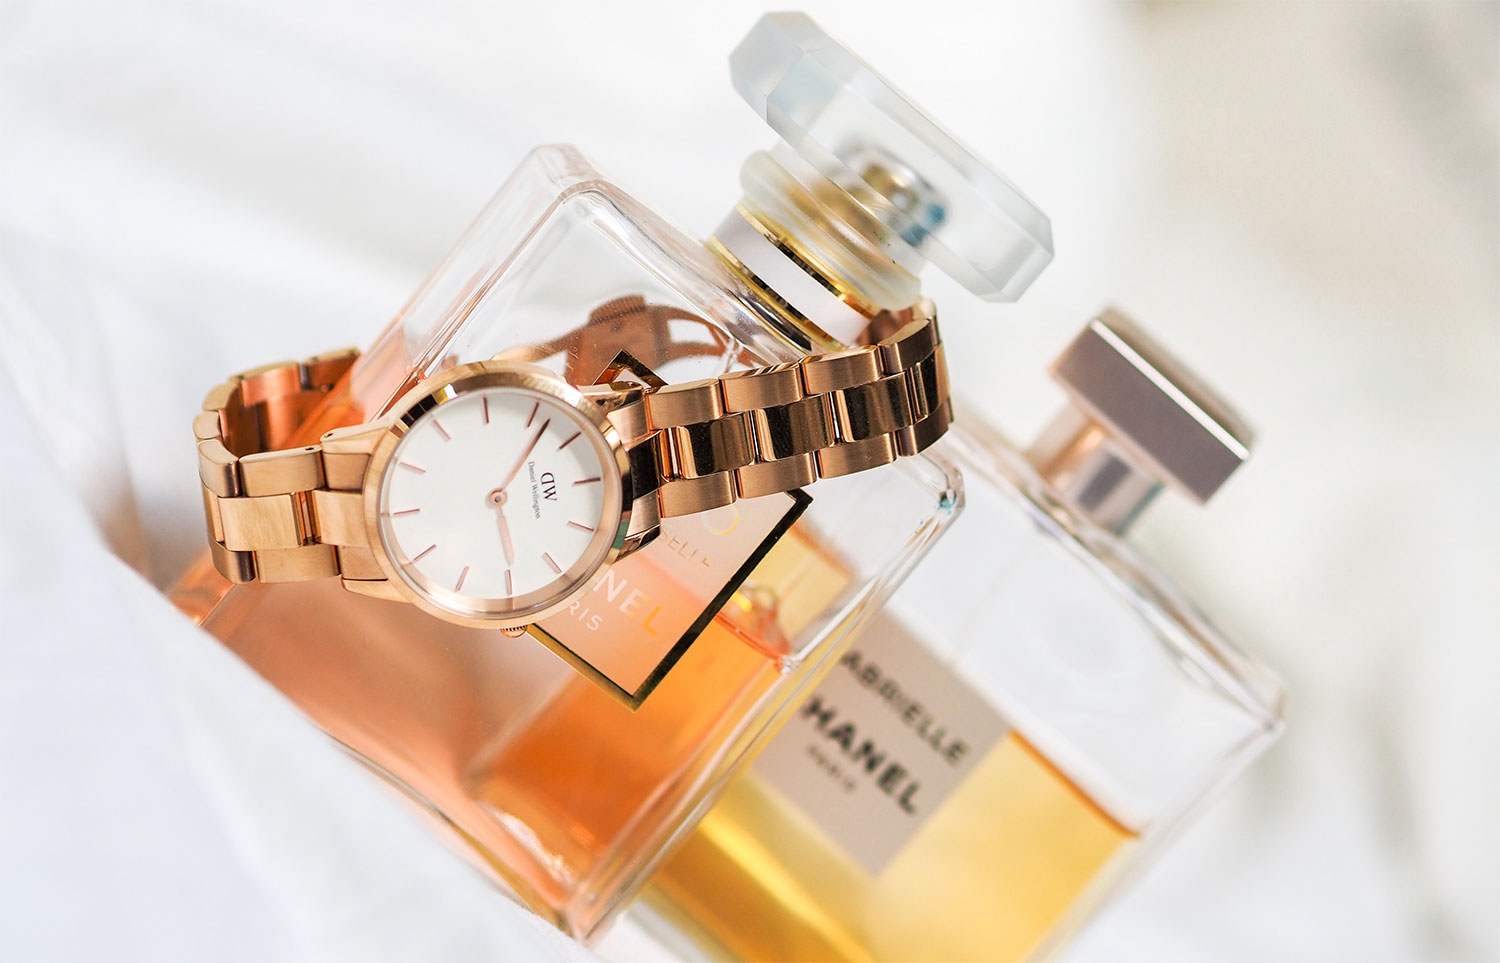 watch and cologne product shot